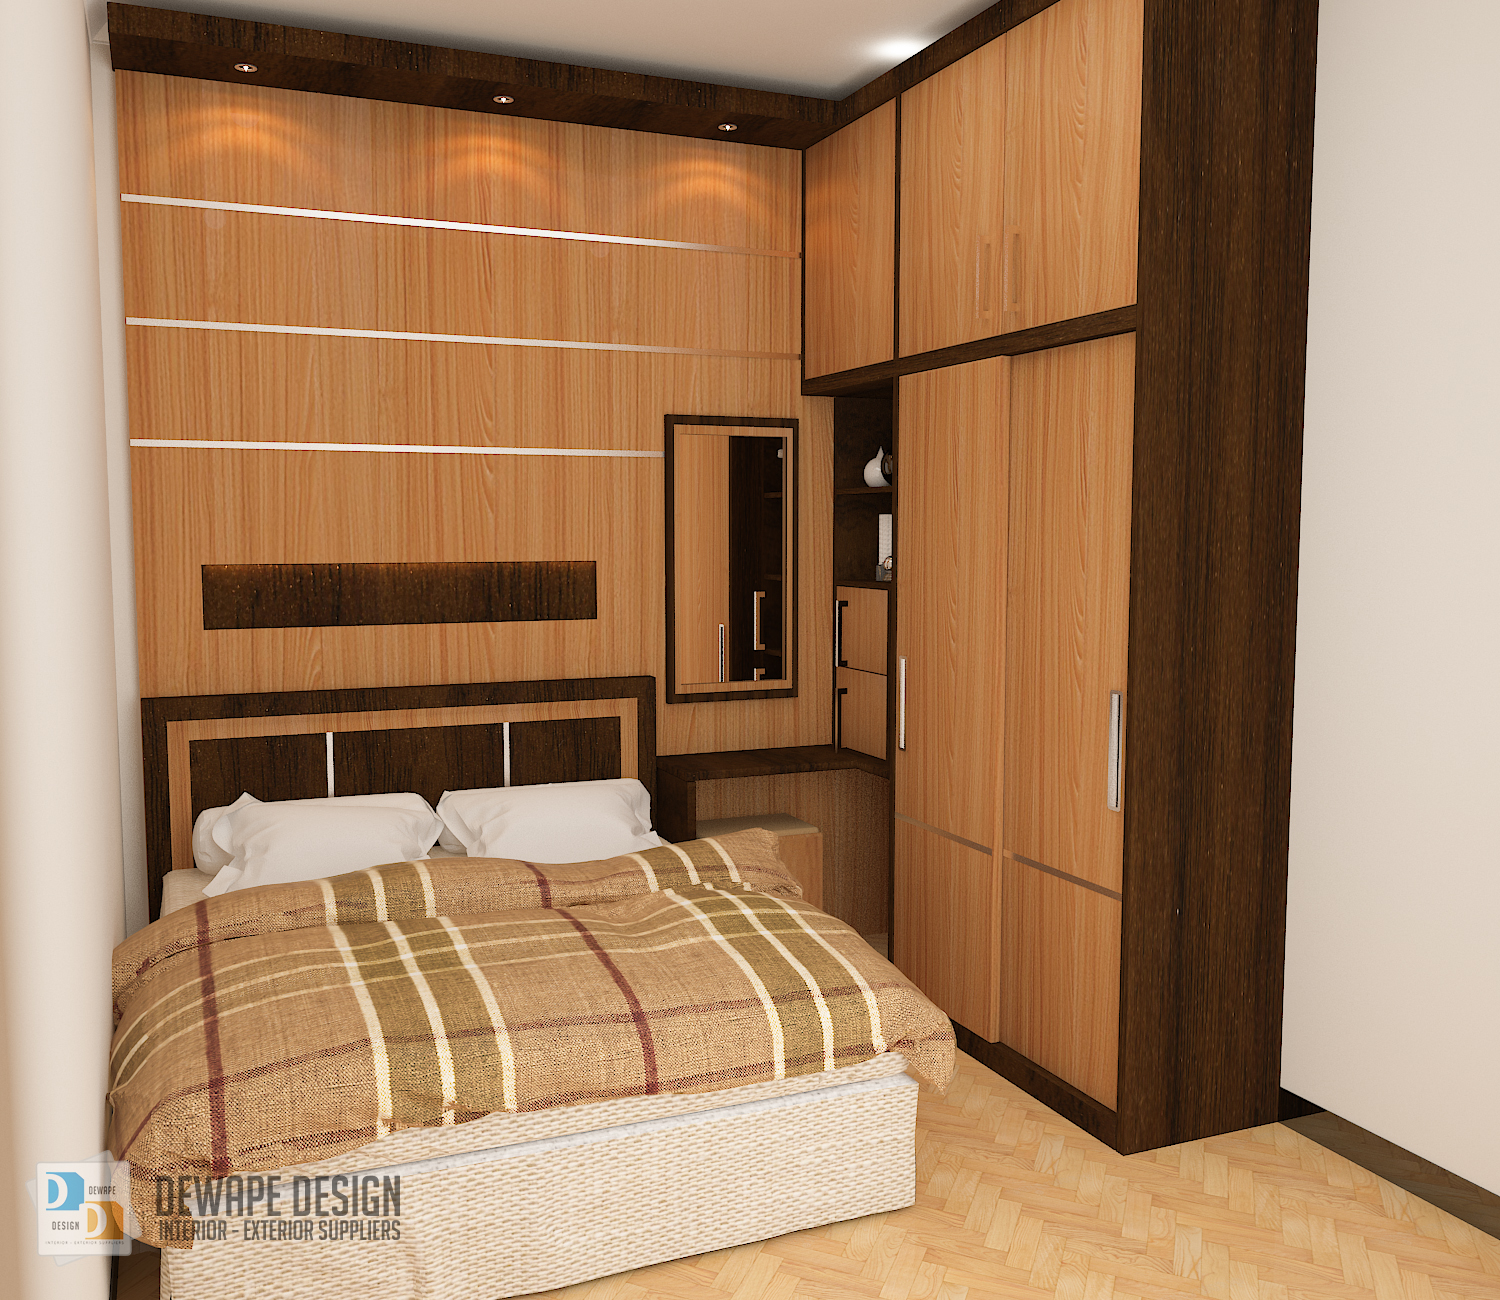 Design Interior Malang